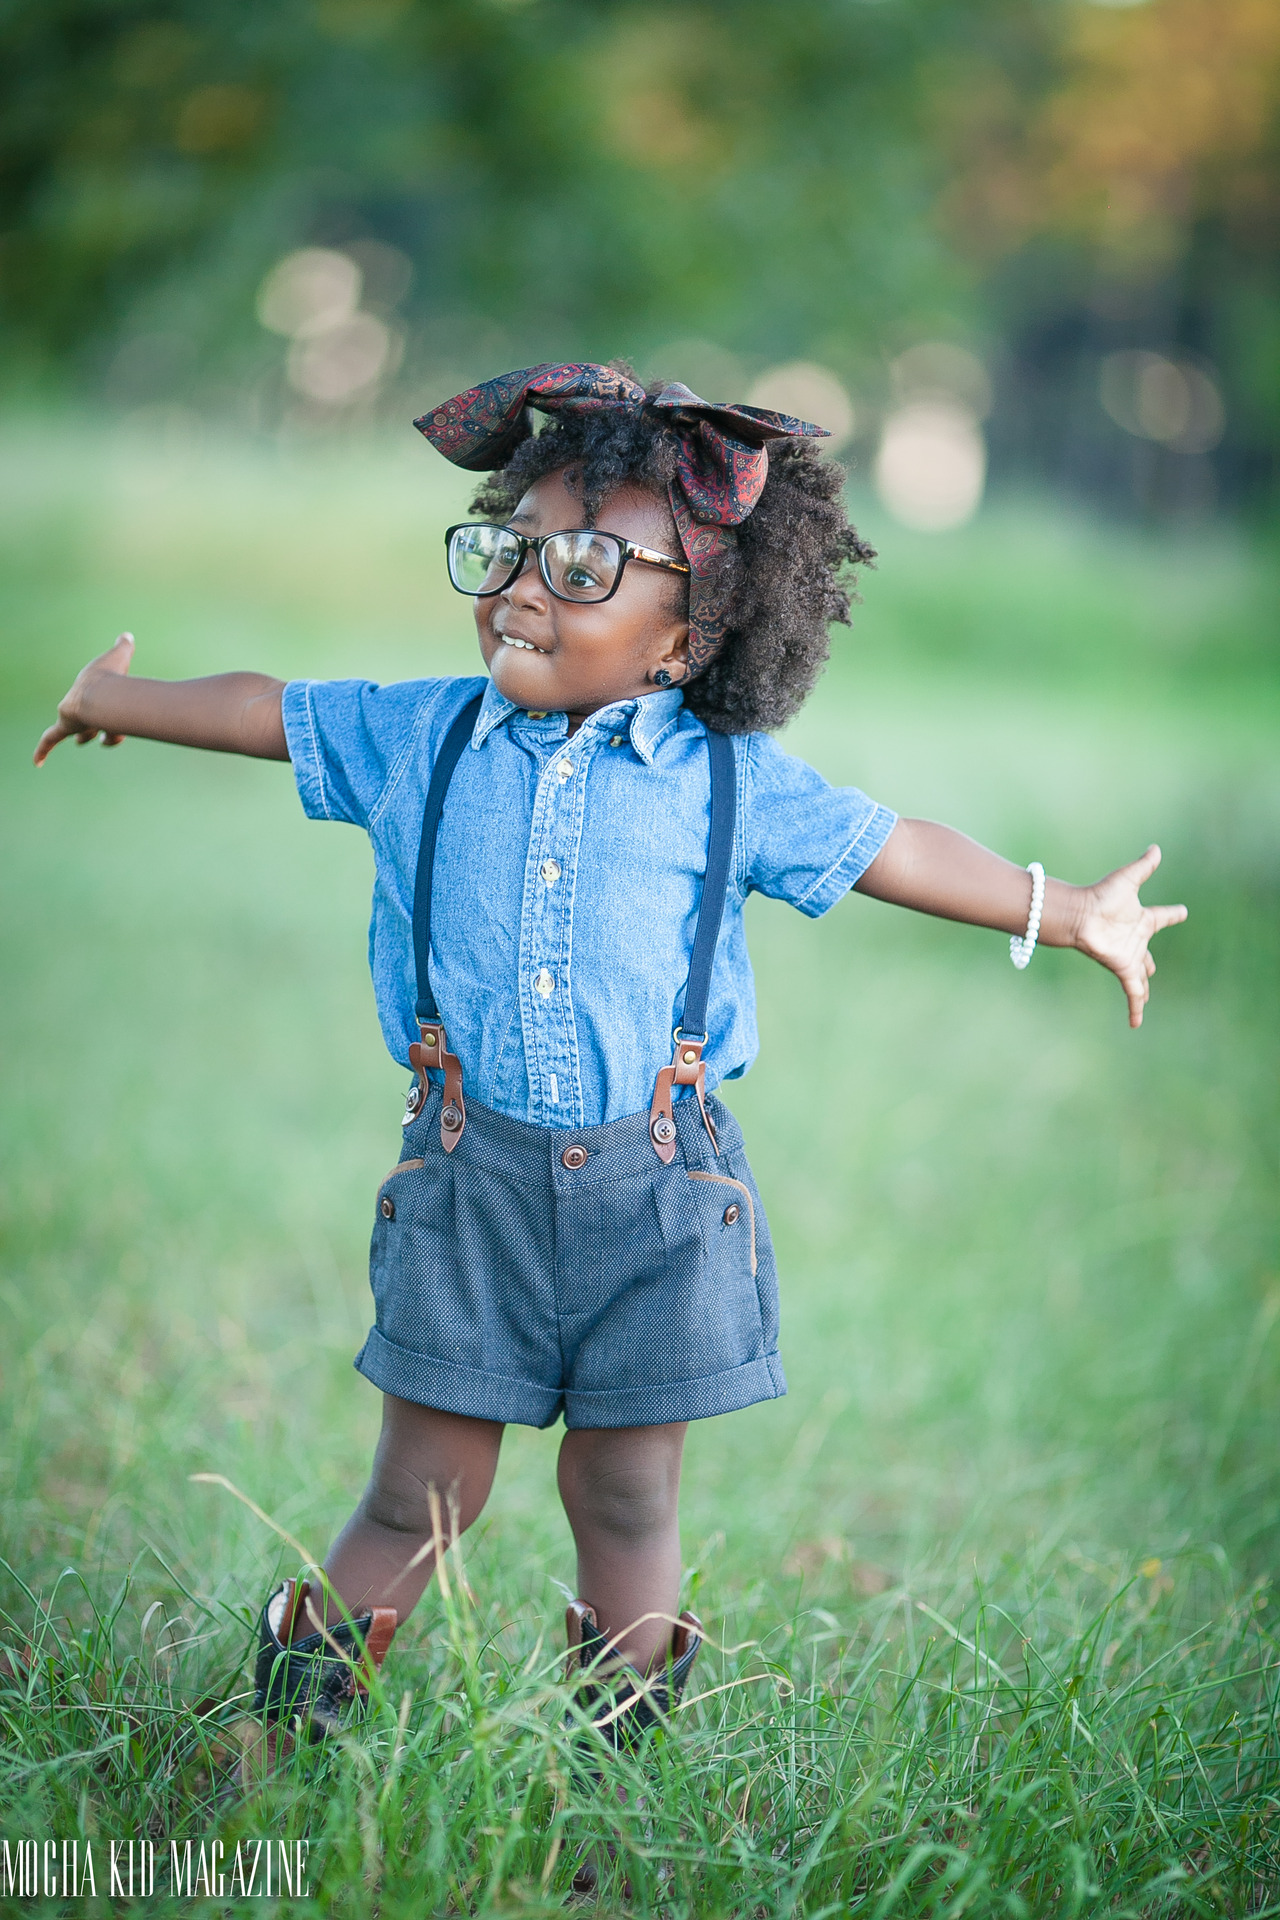 ...But really though: Dress shirts, sneakers, suspenders/overalls, bows.... that could be cute.